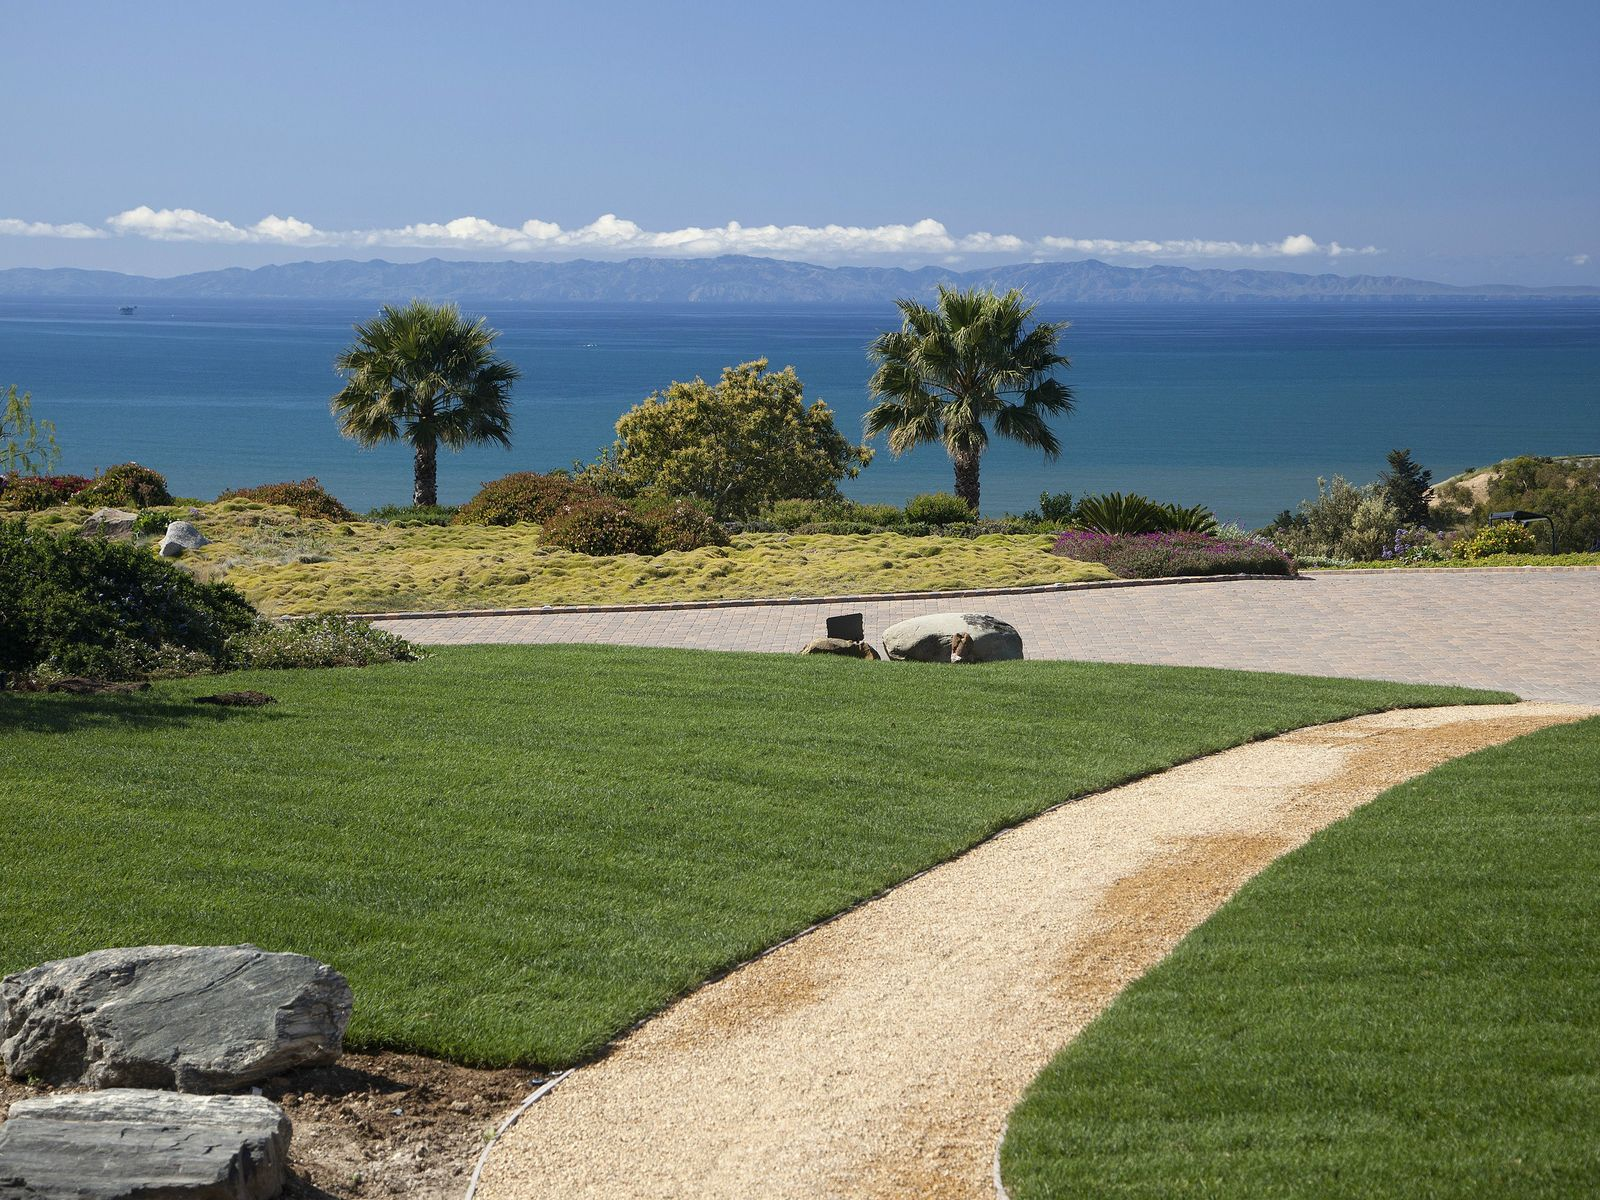 Ocean View Showcase, Santa Barbara CA Single Family Home - Santa Barbara Real Estate